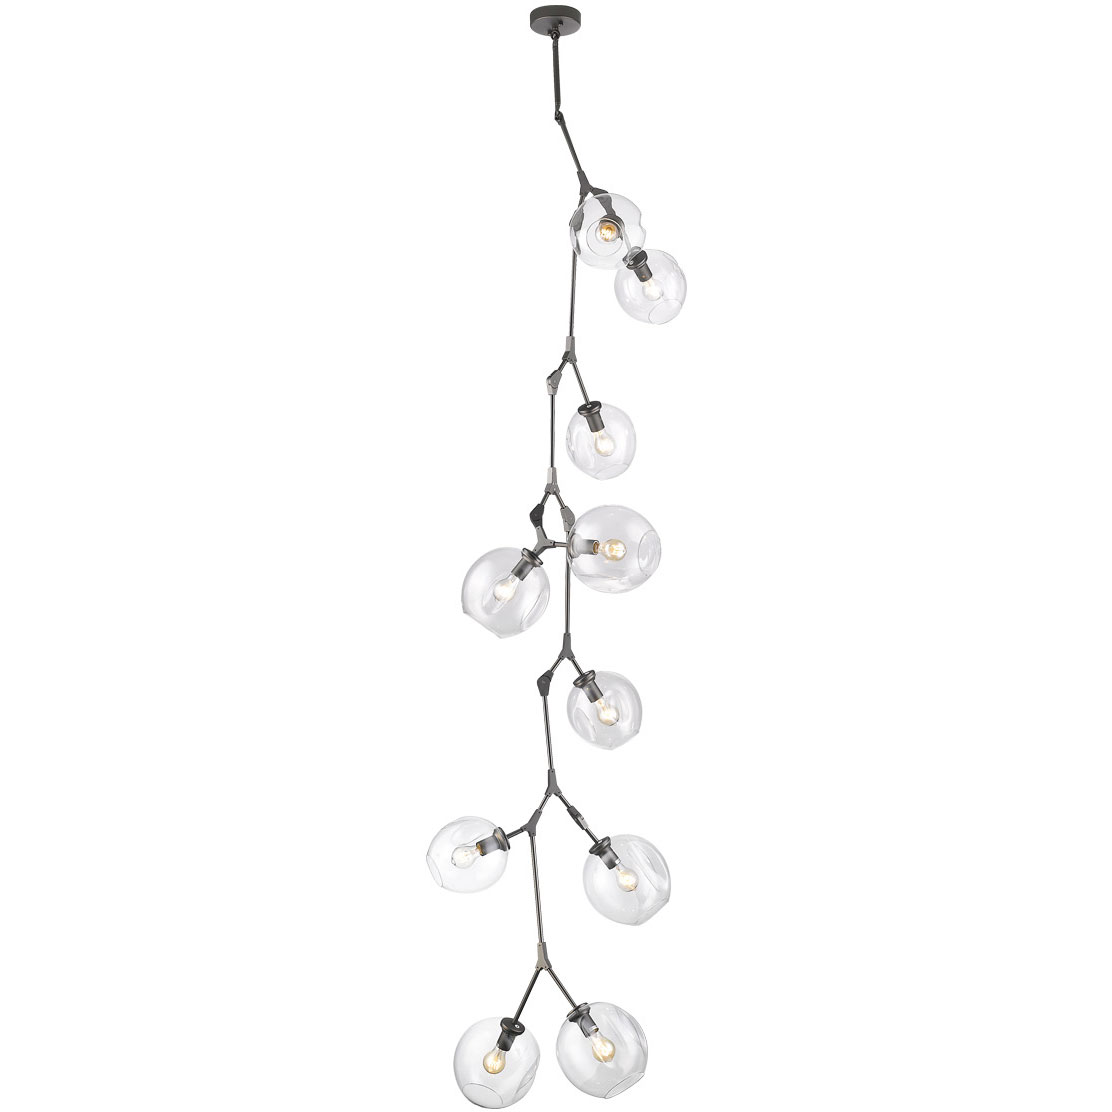 Vertical track lighting Minimalist Fairfax Vertical Chandelier By Avenue Lighting Flos Flos Usa Fairfax Vertical Chandelier By Avenue Lighting Hf8080dbz